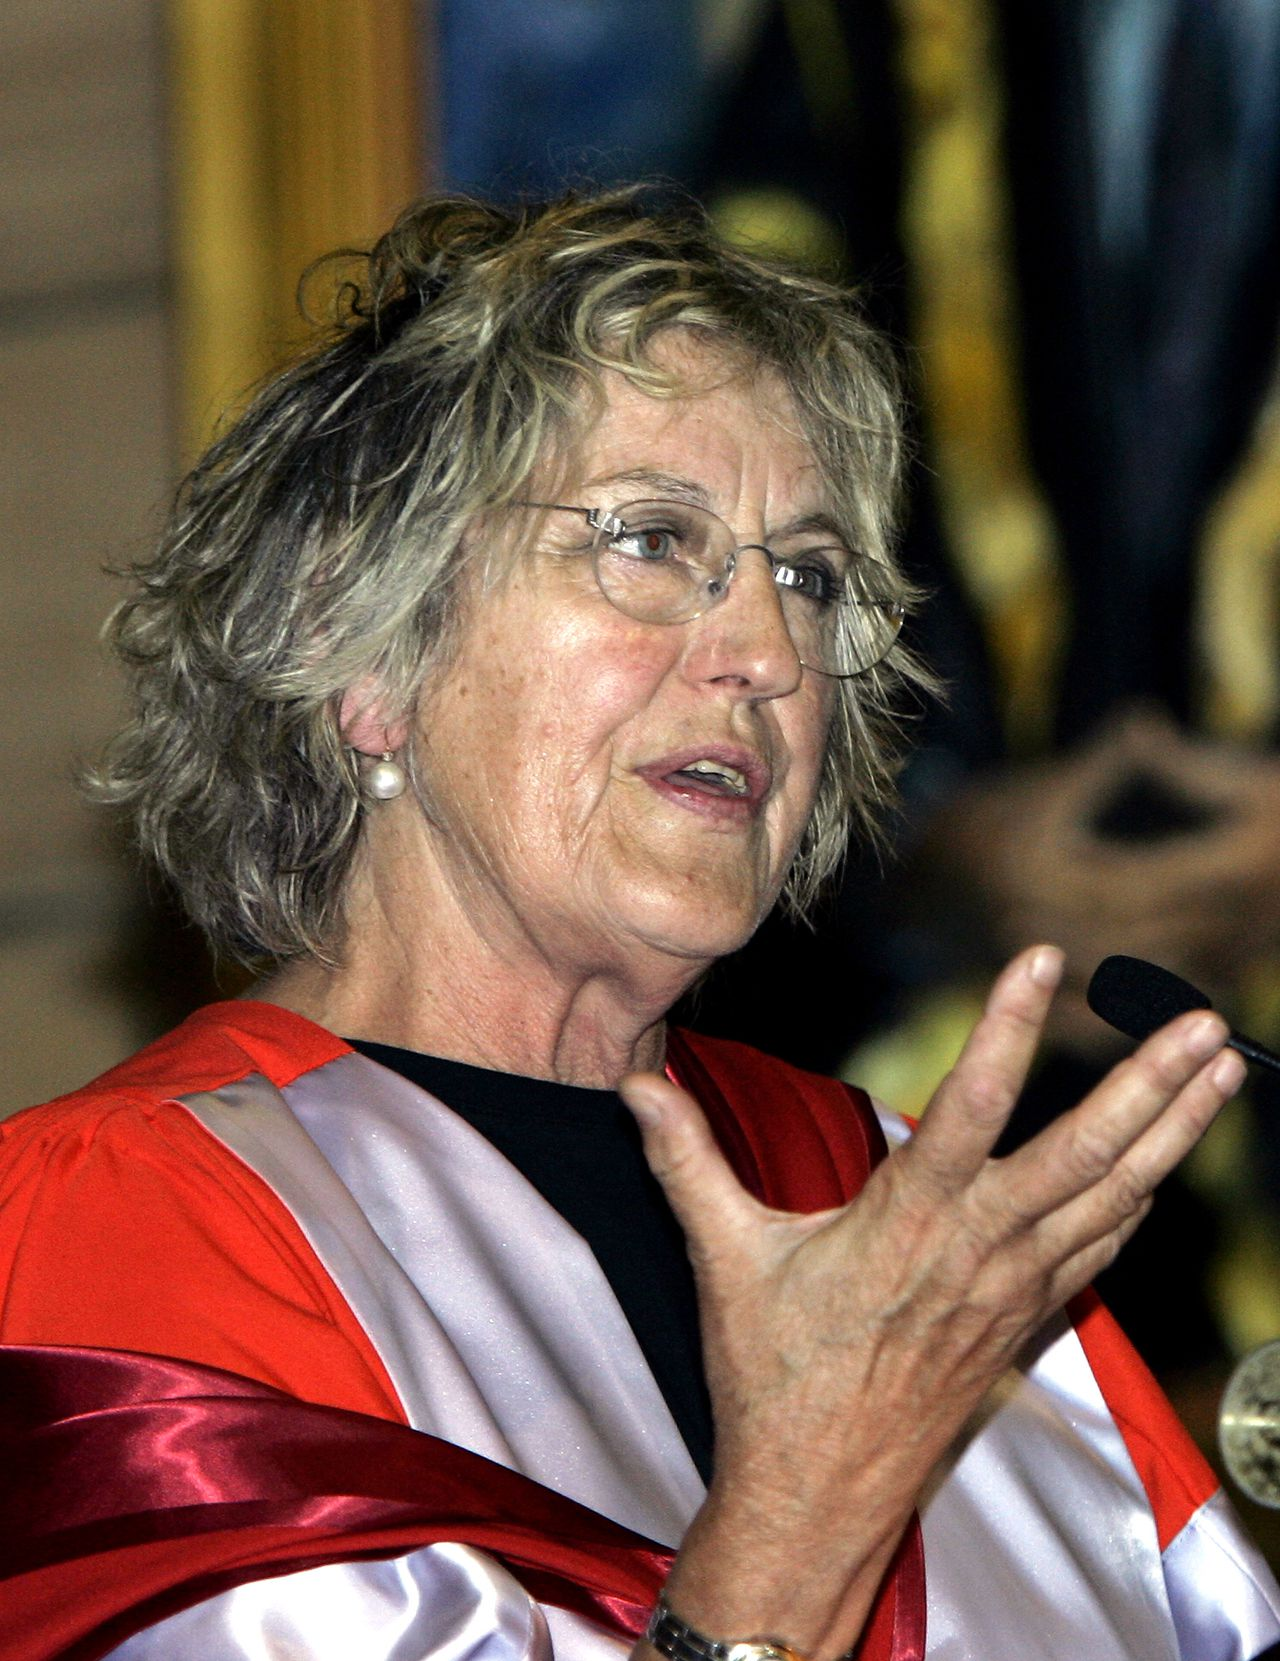 """Publiciste en activiste Germaine Greer (The Female Eunuch) is één van de gasten in het culturele discussieprogramma Newsnight review, BBC 2, 0.00-0.35u. ** FILE ** Germaine Greer speaks after she was presented with an Honorary Degree in the great hall of the Sydney University in Sydney, Australia Friday, Nov. 4, 2005. Greer, known for being an outspoken Australian feminist, was awarded an Honorary Degree of Doctor of Letters. Author Salman Rushdie squared off against the feminist icon in a letter published in a newspaper, labeling her support for a group of Bengali film protesters as """"philistine, sanctimonious, and disgraceful."""" A group of Bangladeshi traders opposes the film version of Monica Ali's book """"Brick Lane,"""" a story about a Bangladeshi woman living in the area of east London. Protesters, unhappy over how the book depicts people in the area, gathered in London Sunday, July 30, 2006 for the culmination of a campaign that has led to the cancellation of plans to shoot scenes for a movie in their neighborhood. (AP Photo/Rob Griffith)"""